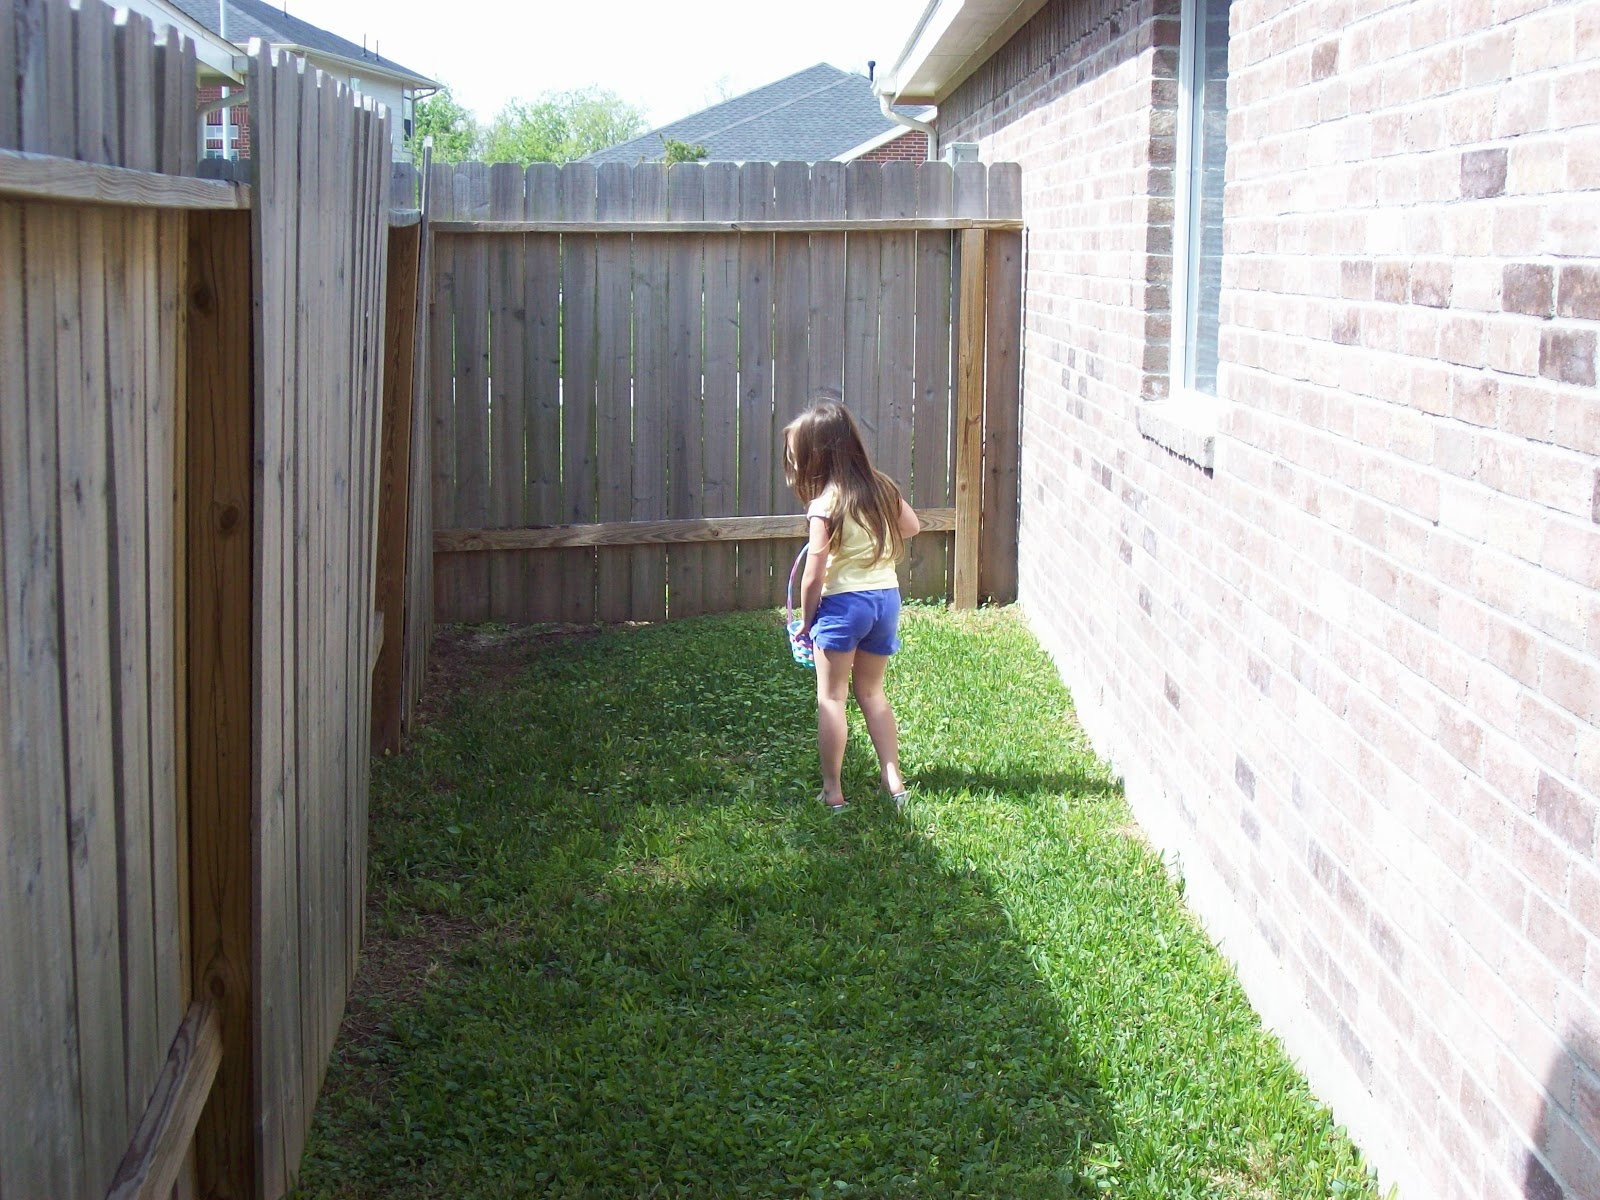 Easter Egg Hunting - 101_2232.JPG